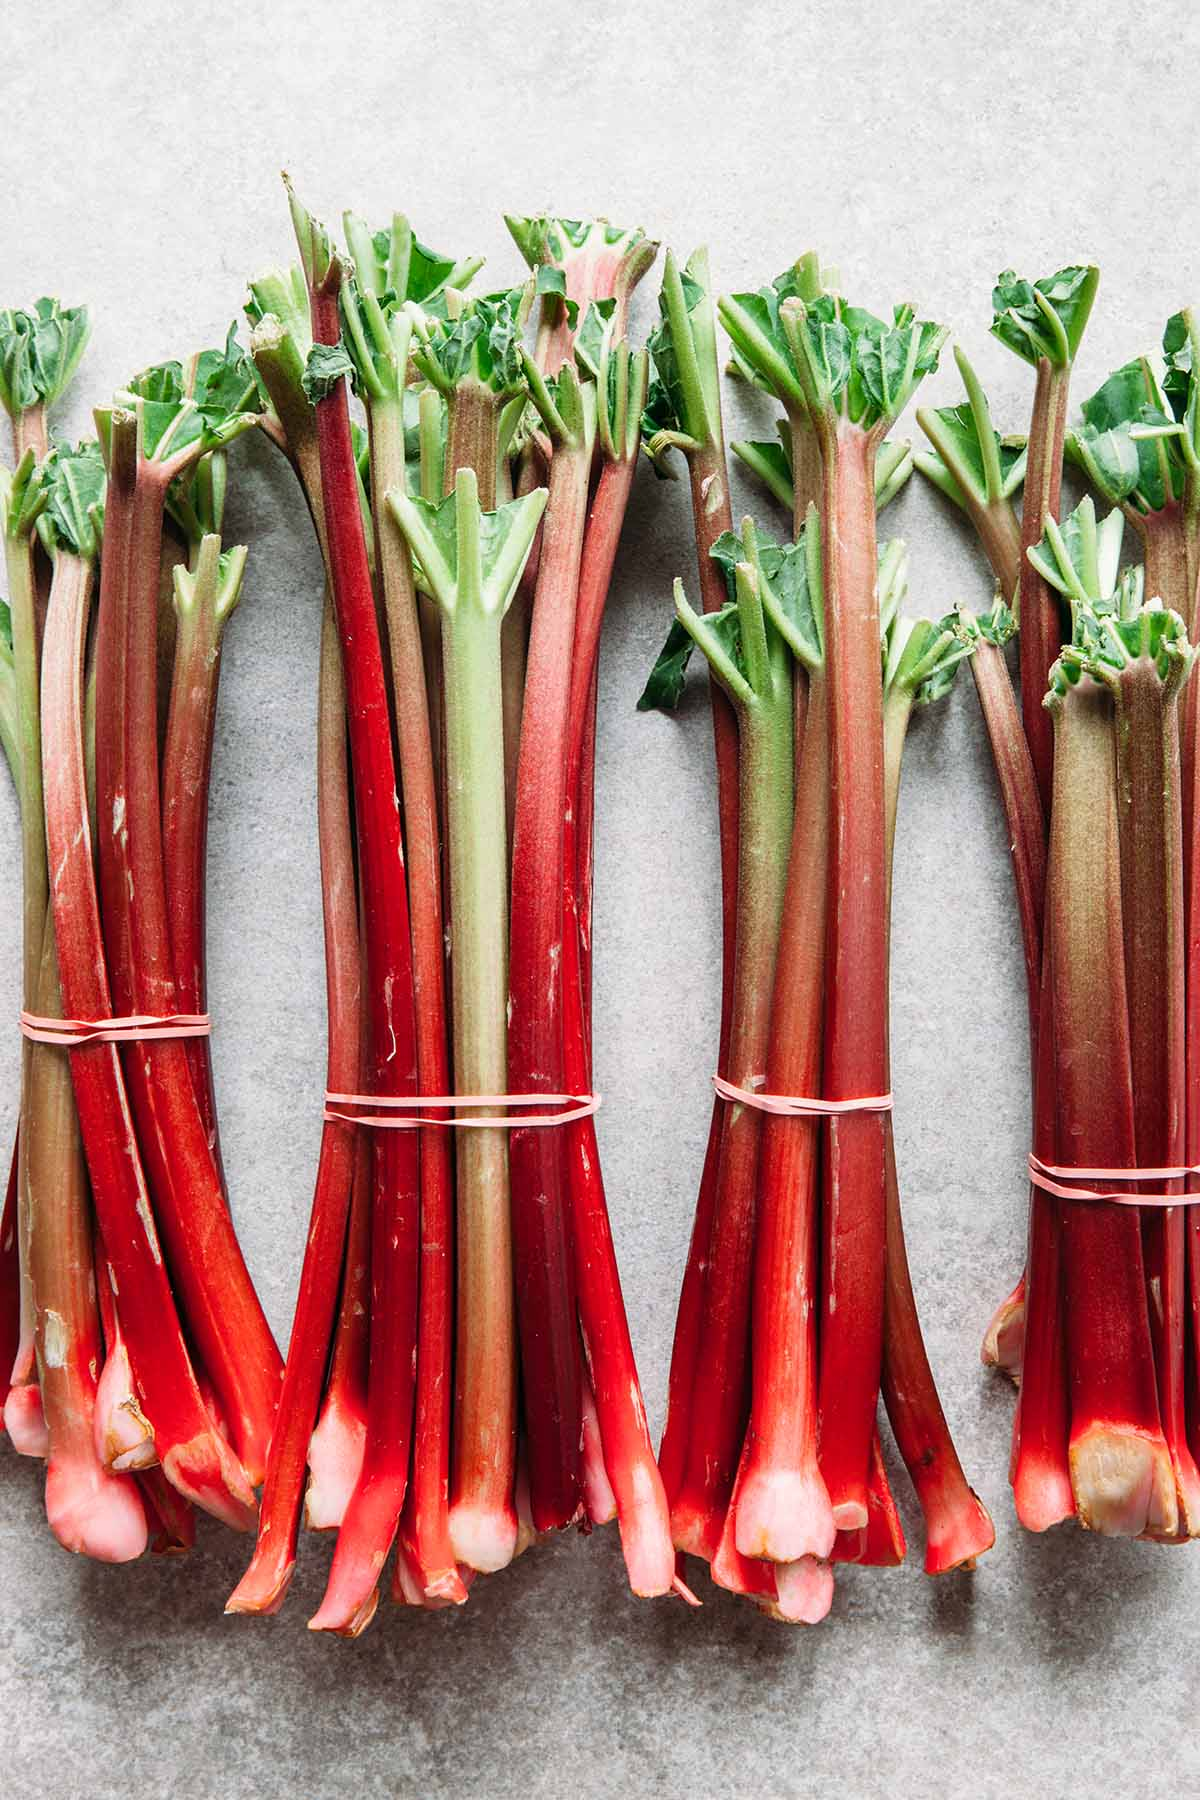 Bunches of fresh rhubarb bound with pink elastic bands.